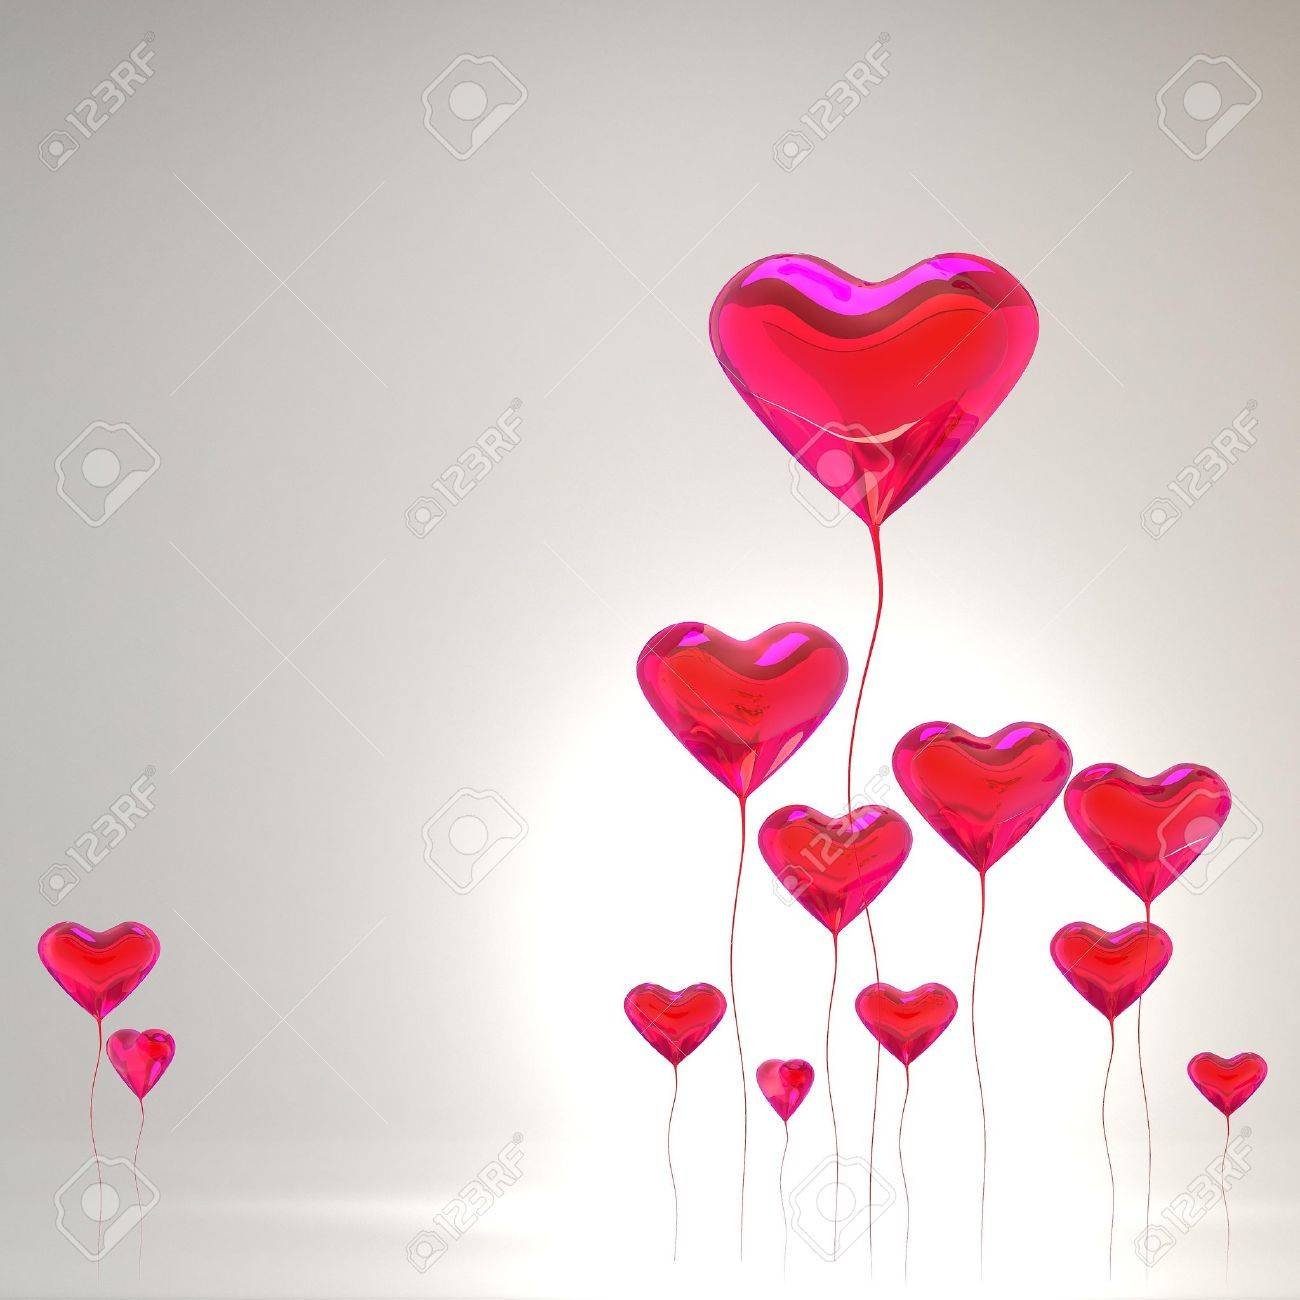 Heart balloon colored red for valentines day background Stock Photo - 11836540